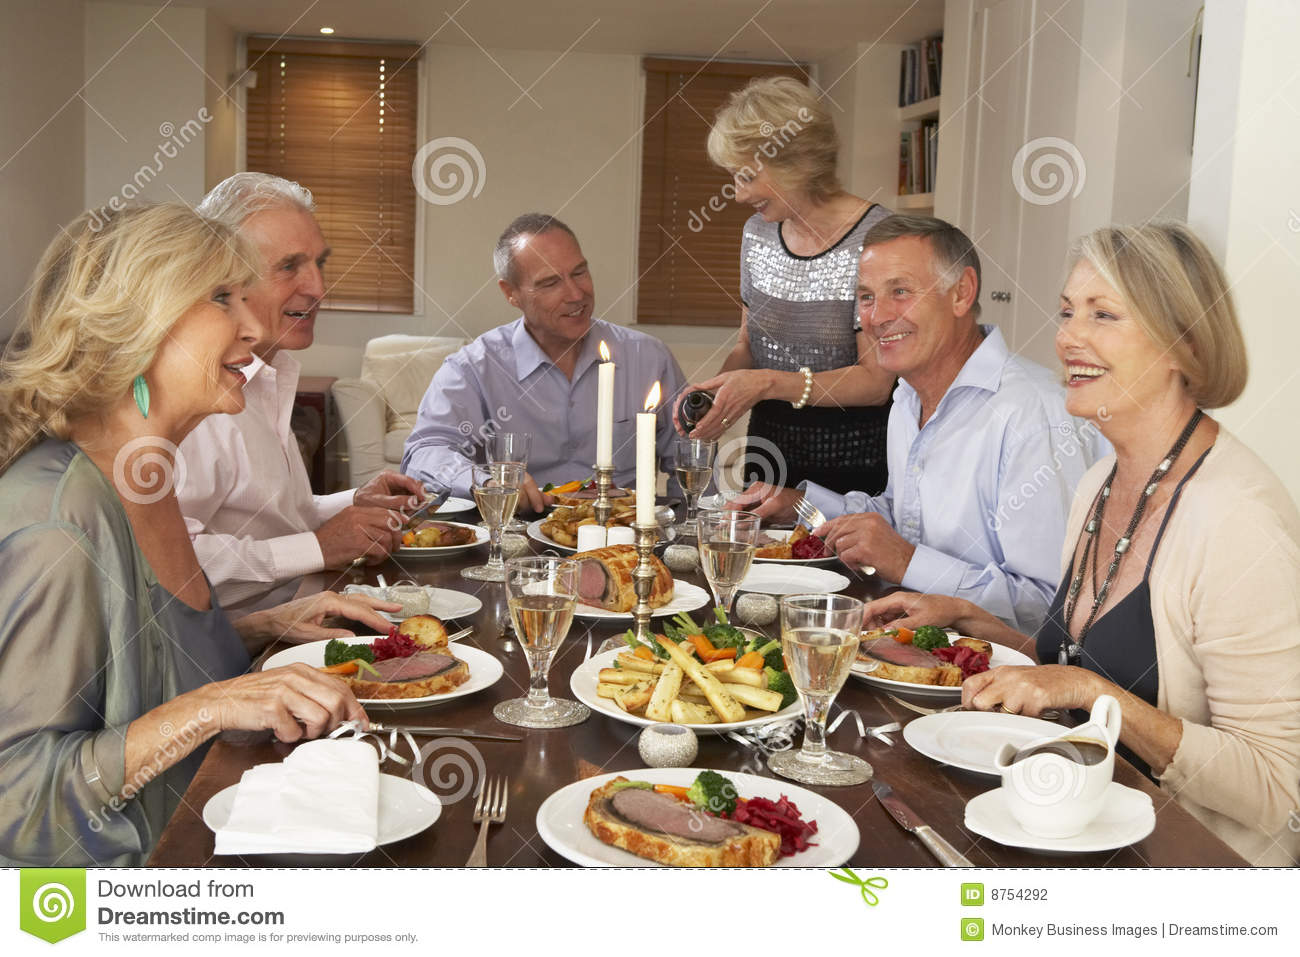 Dinner friends party seated table